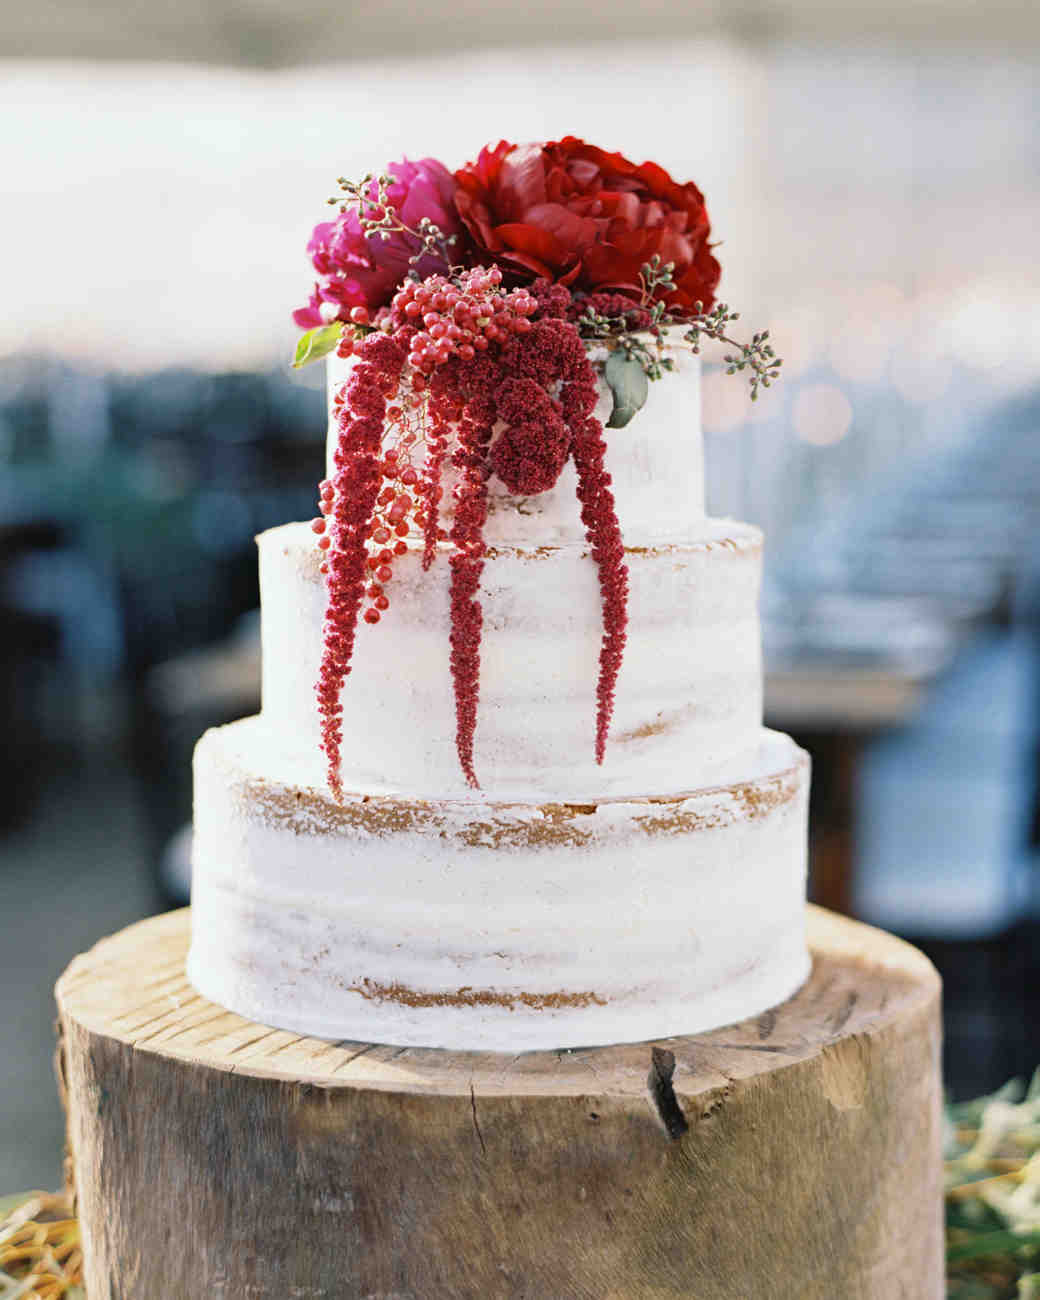 Wedding Cakes With Flowers On Top: 66 Fall Wedding Cakes We're Obsessed With